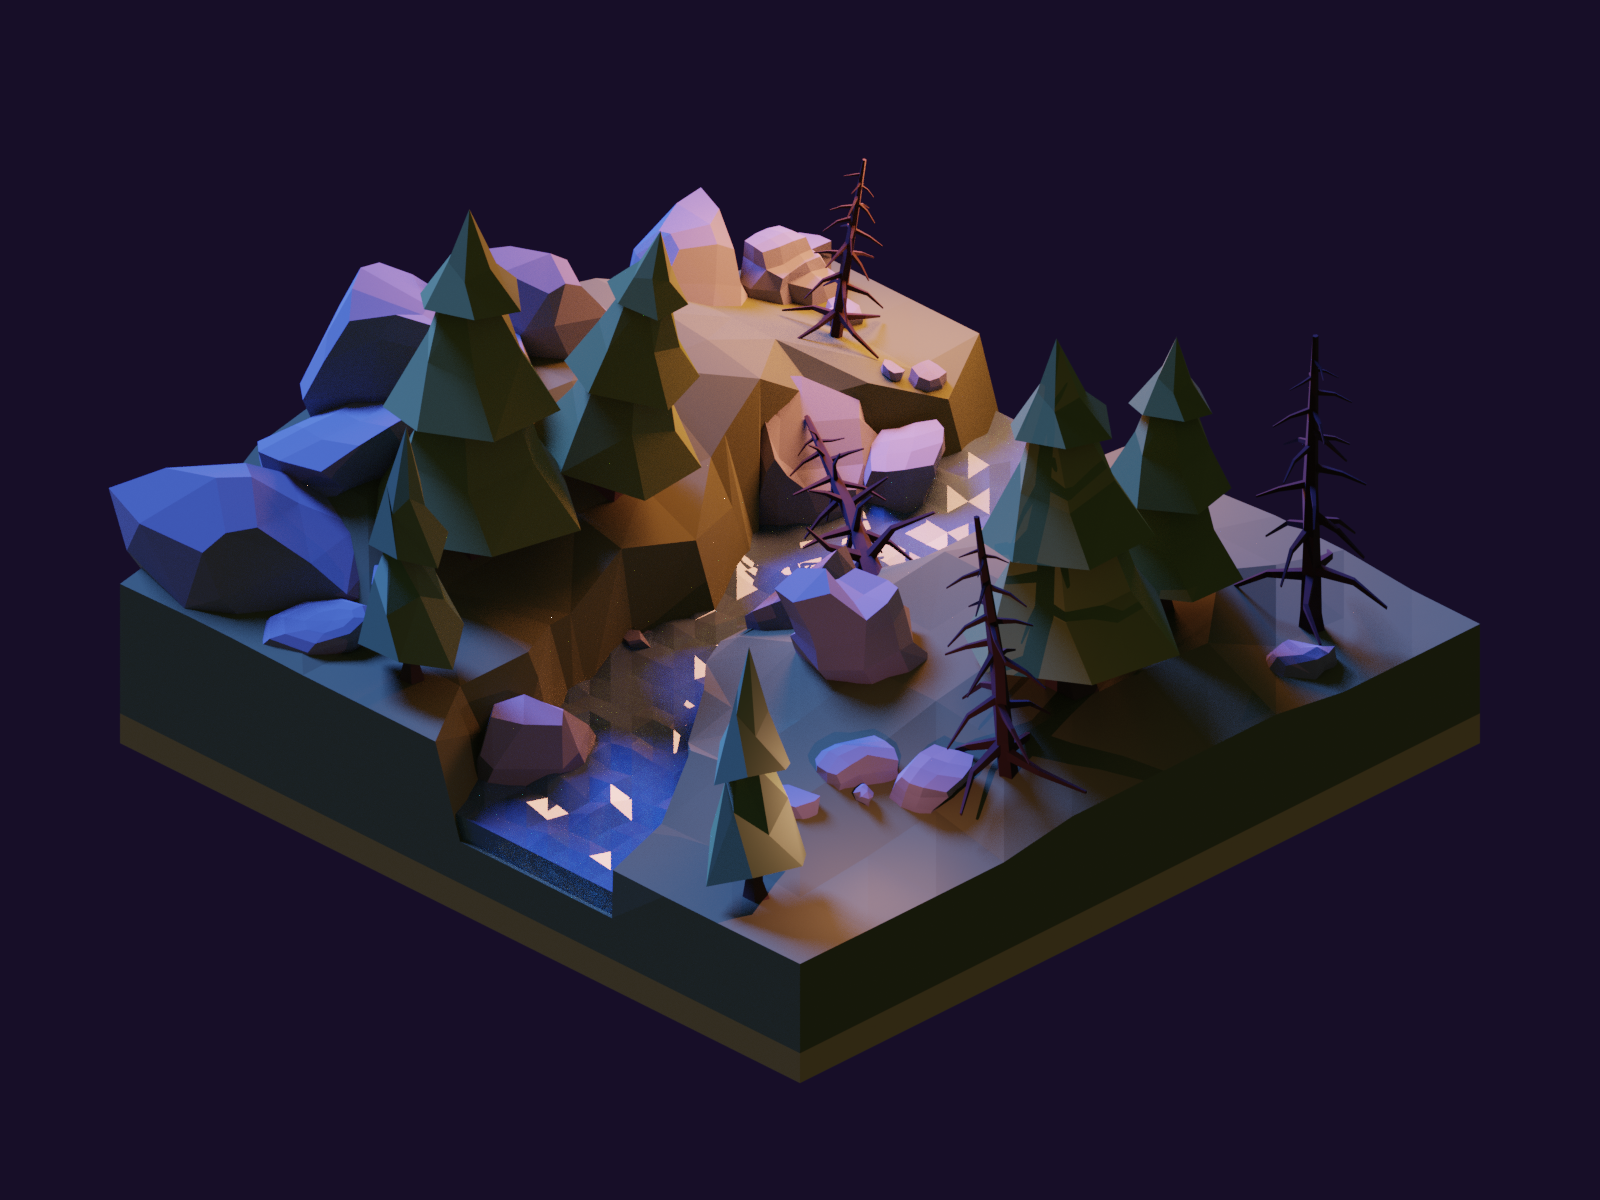 Forest Night Diorama rocks trees moonlight night forest diorama model isometric lowpoly render design blender 3d illustration